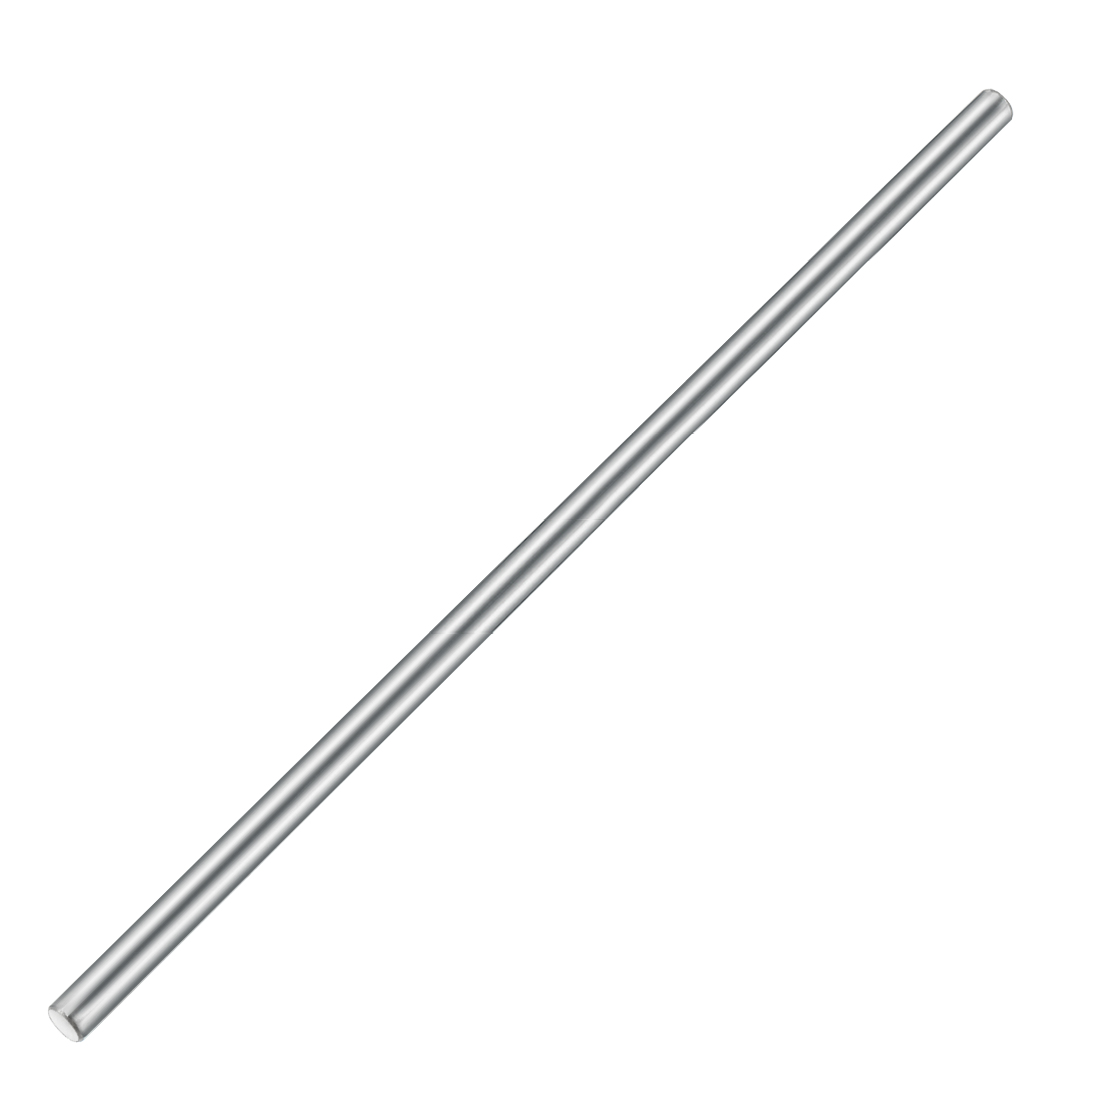 3mm Dia 170mm Length Stainless Steel Solid Round Shaft Rod for RC Model Toy